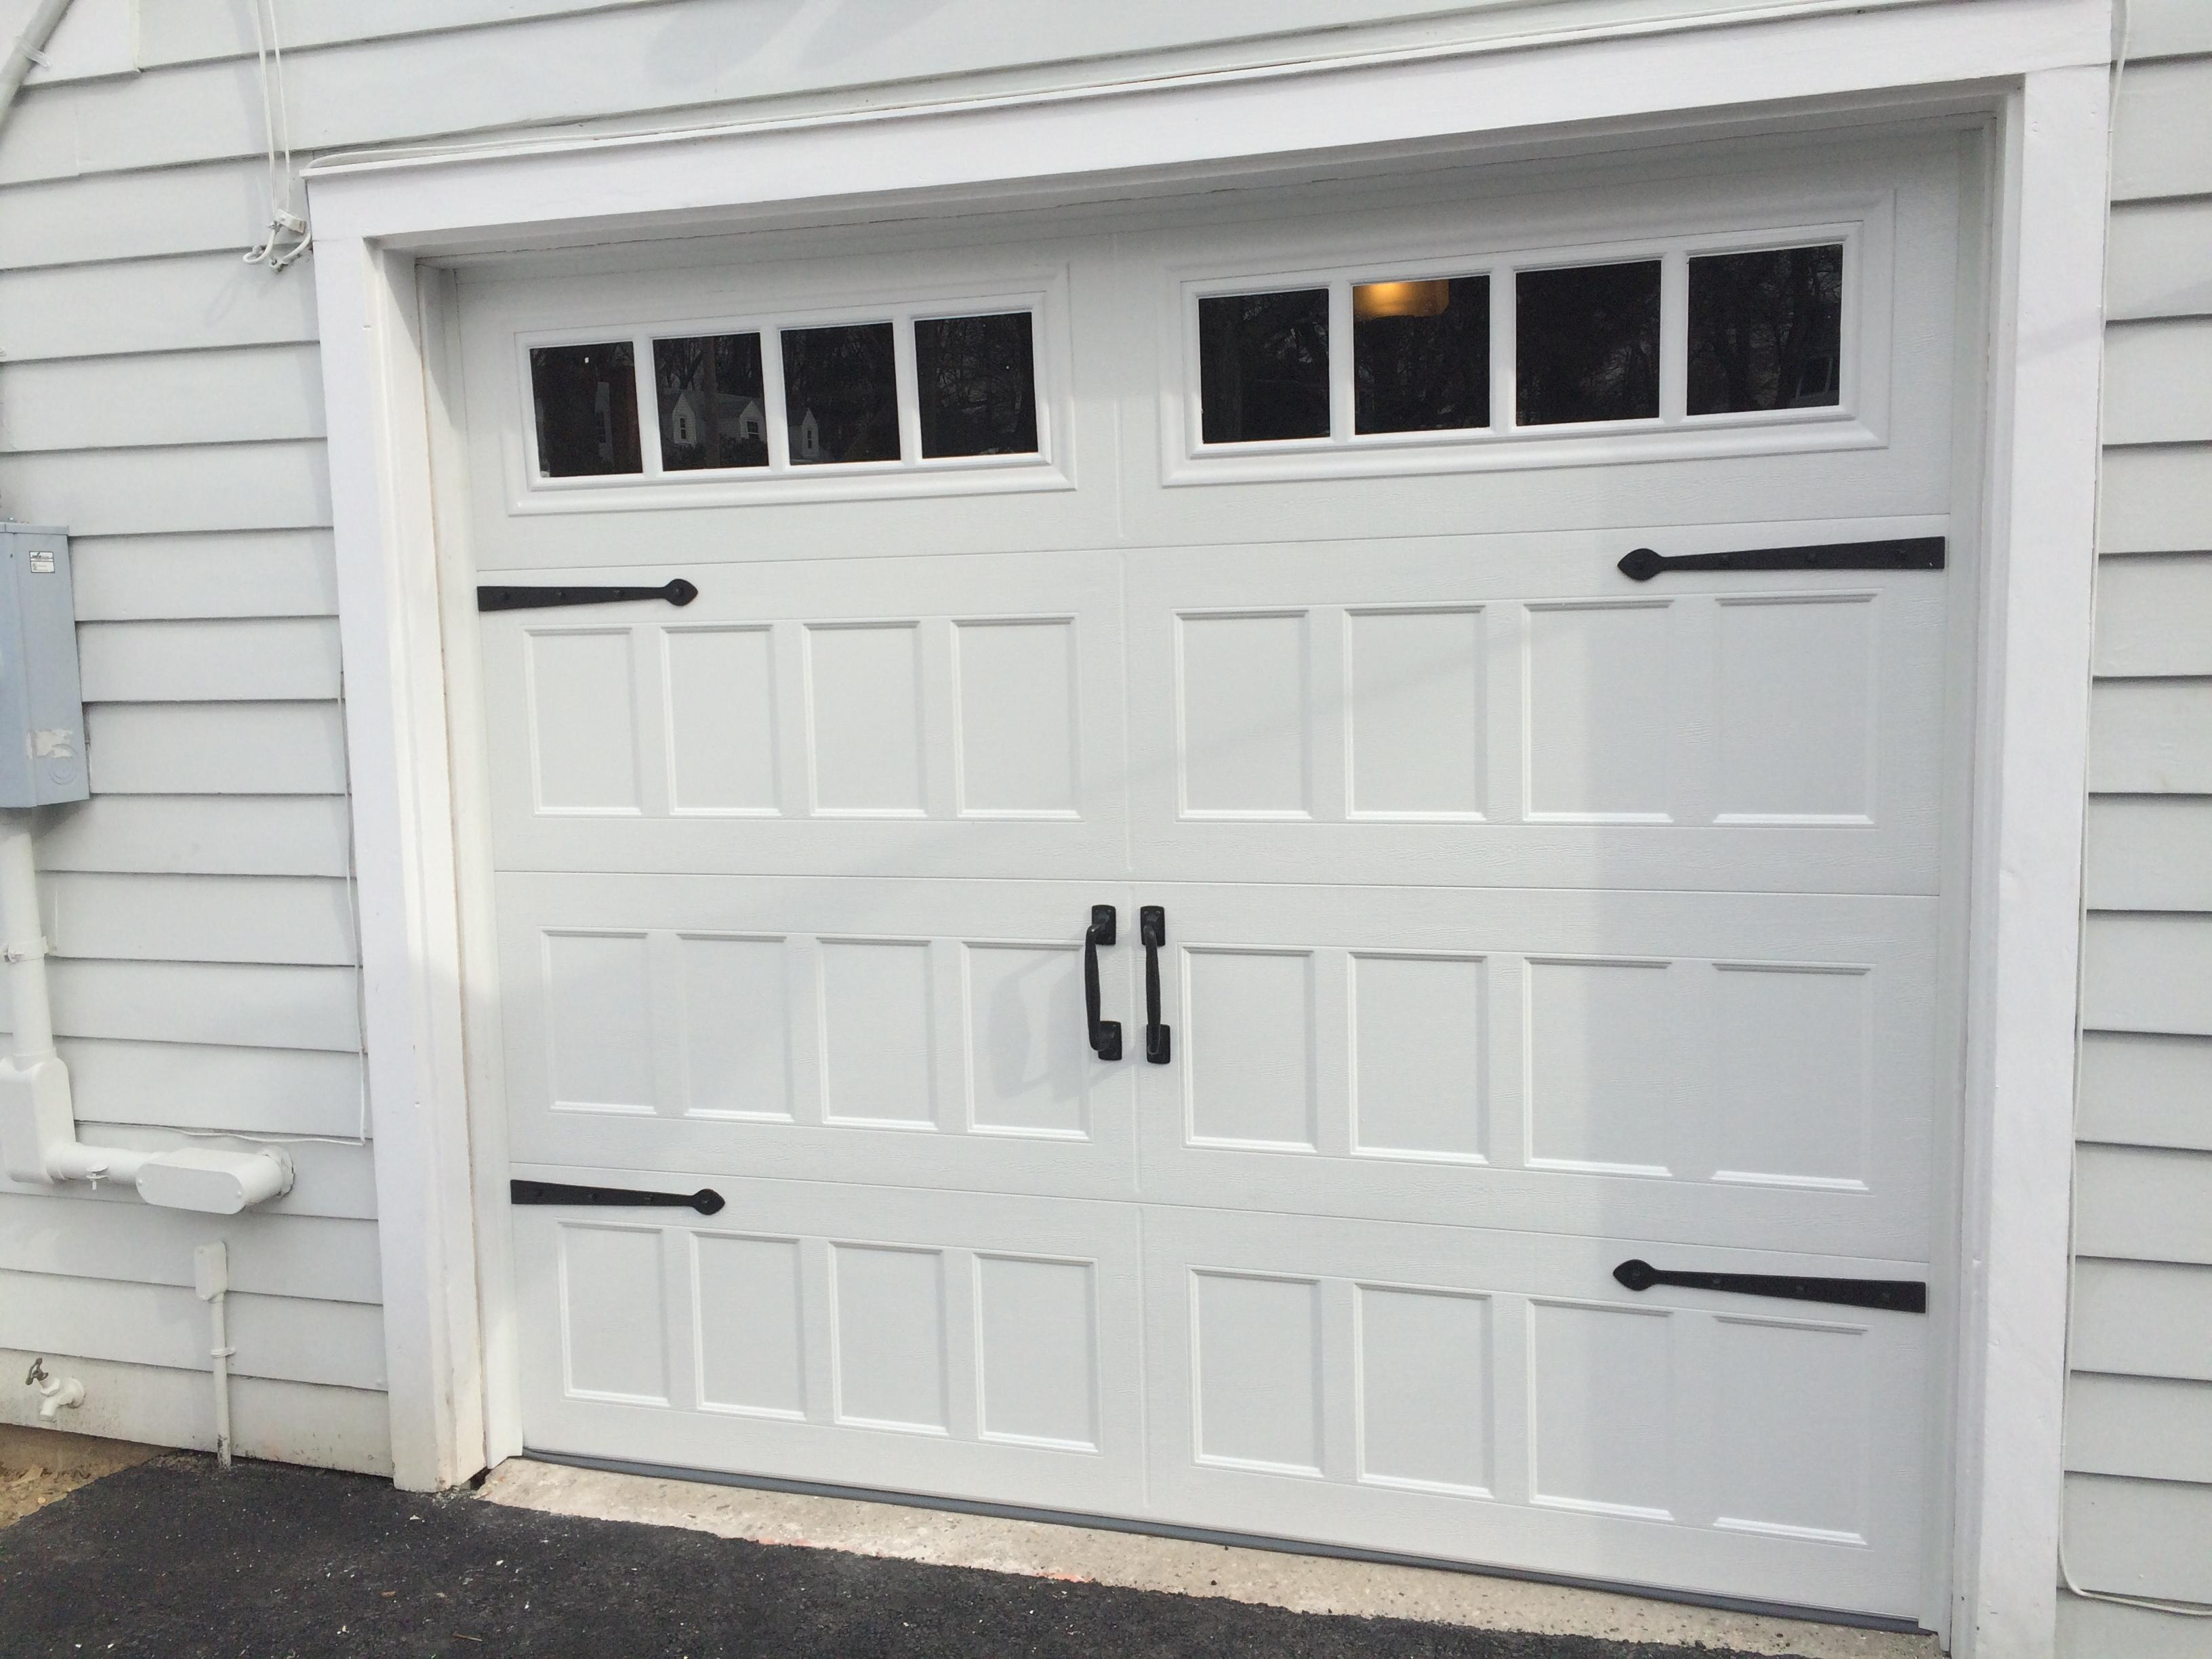 2448 #6B5D4E Overhead Doors Solutions In West Haven CT 06516 ChamberofCommerce  image Overhead Garage Doors Residential Reviews 37133264